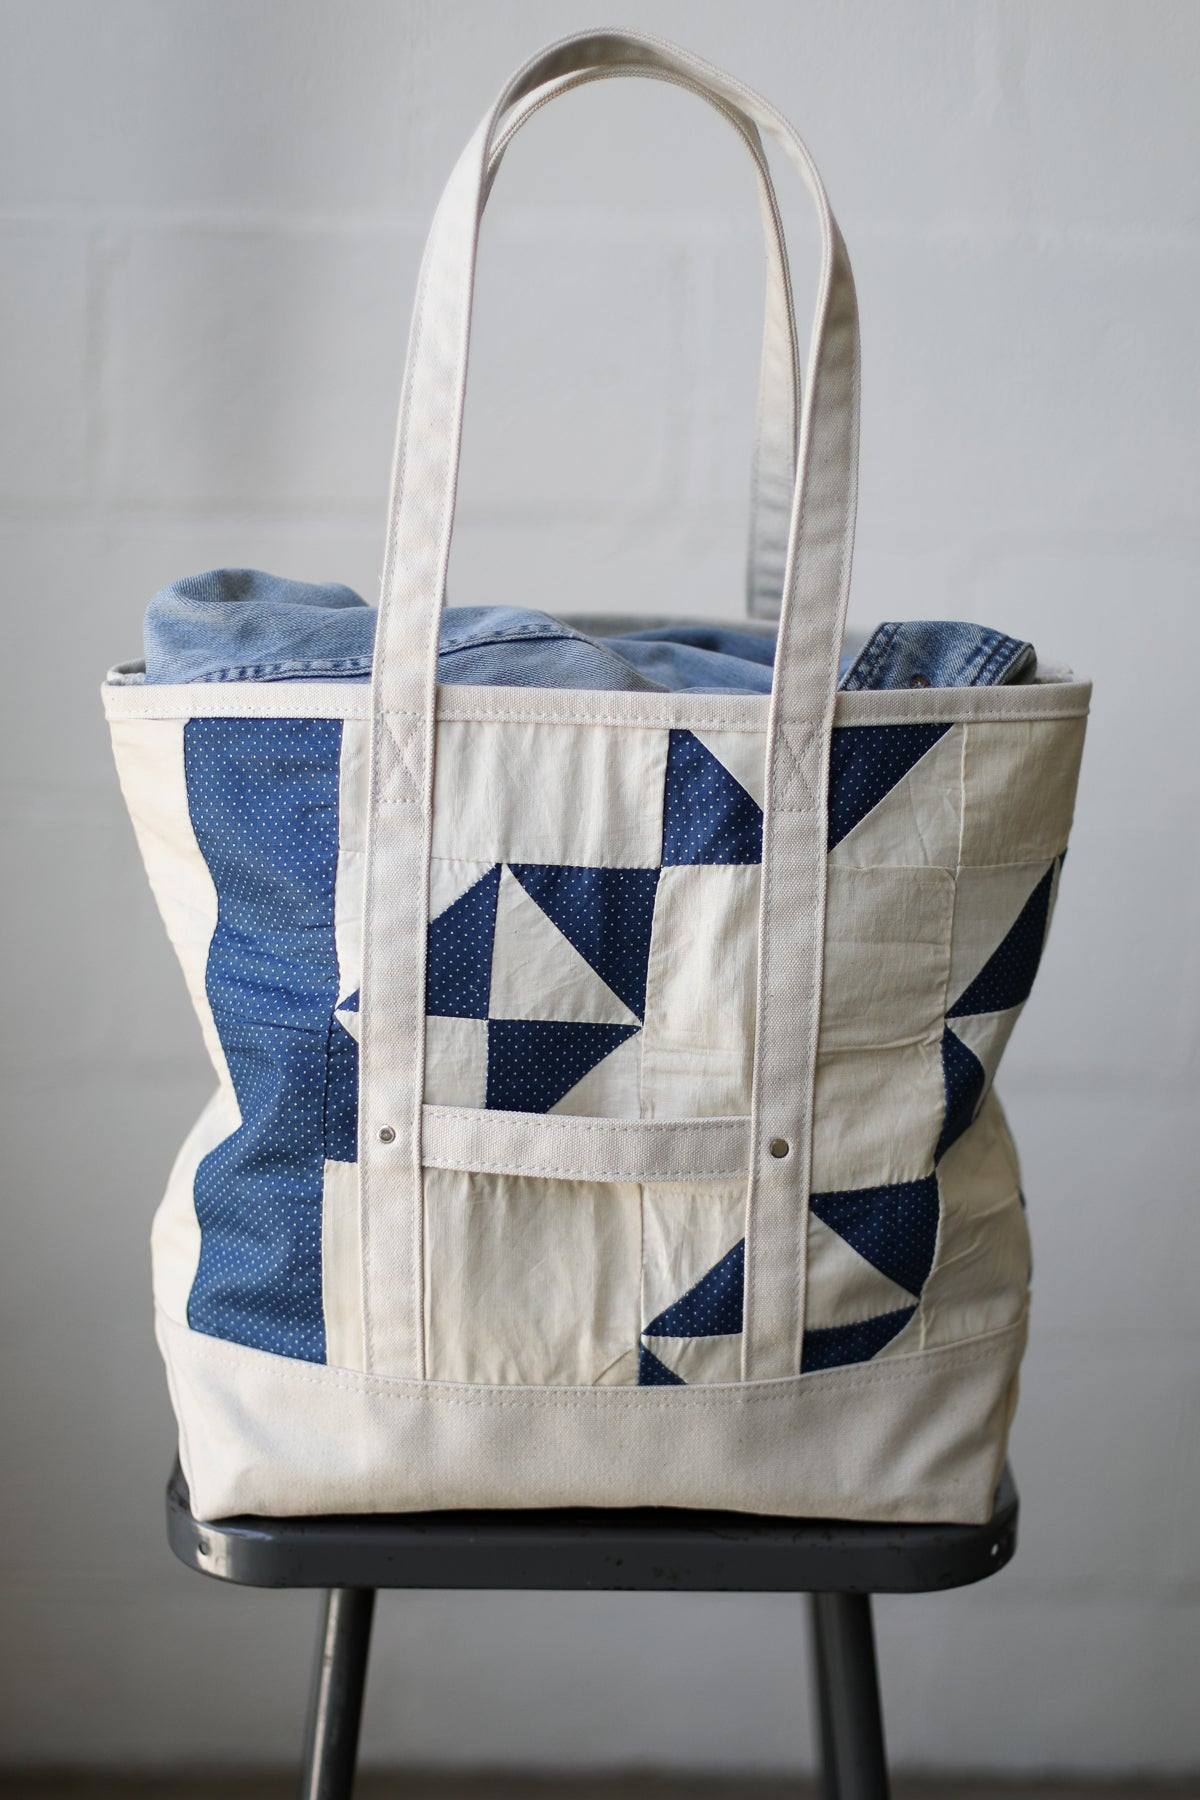 Reclaimed Market Tote No. 047